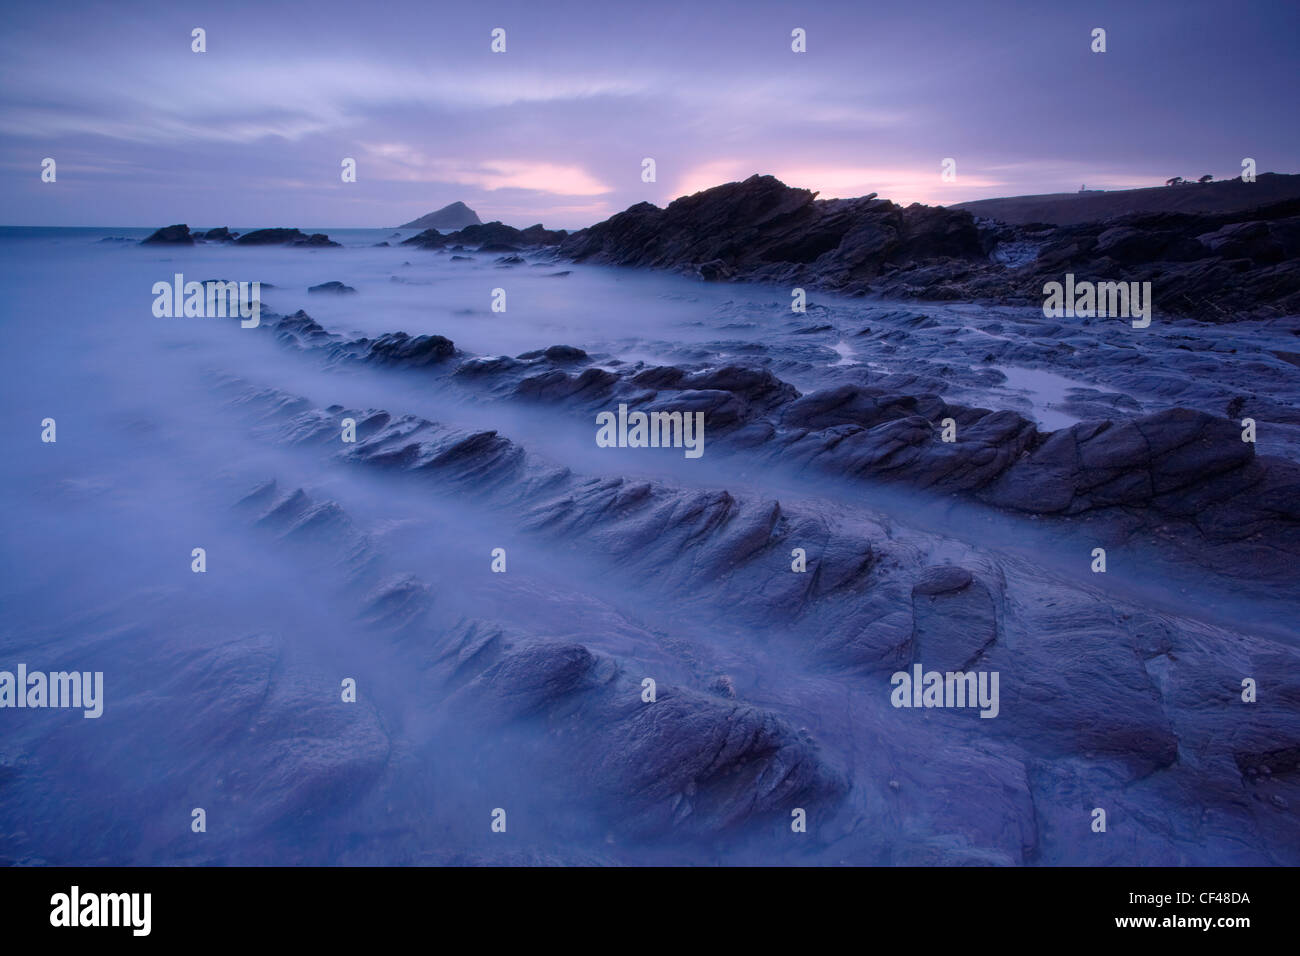 Waves rushing in over rocks on the foreshore at Wembury Bay. - Stock Image